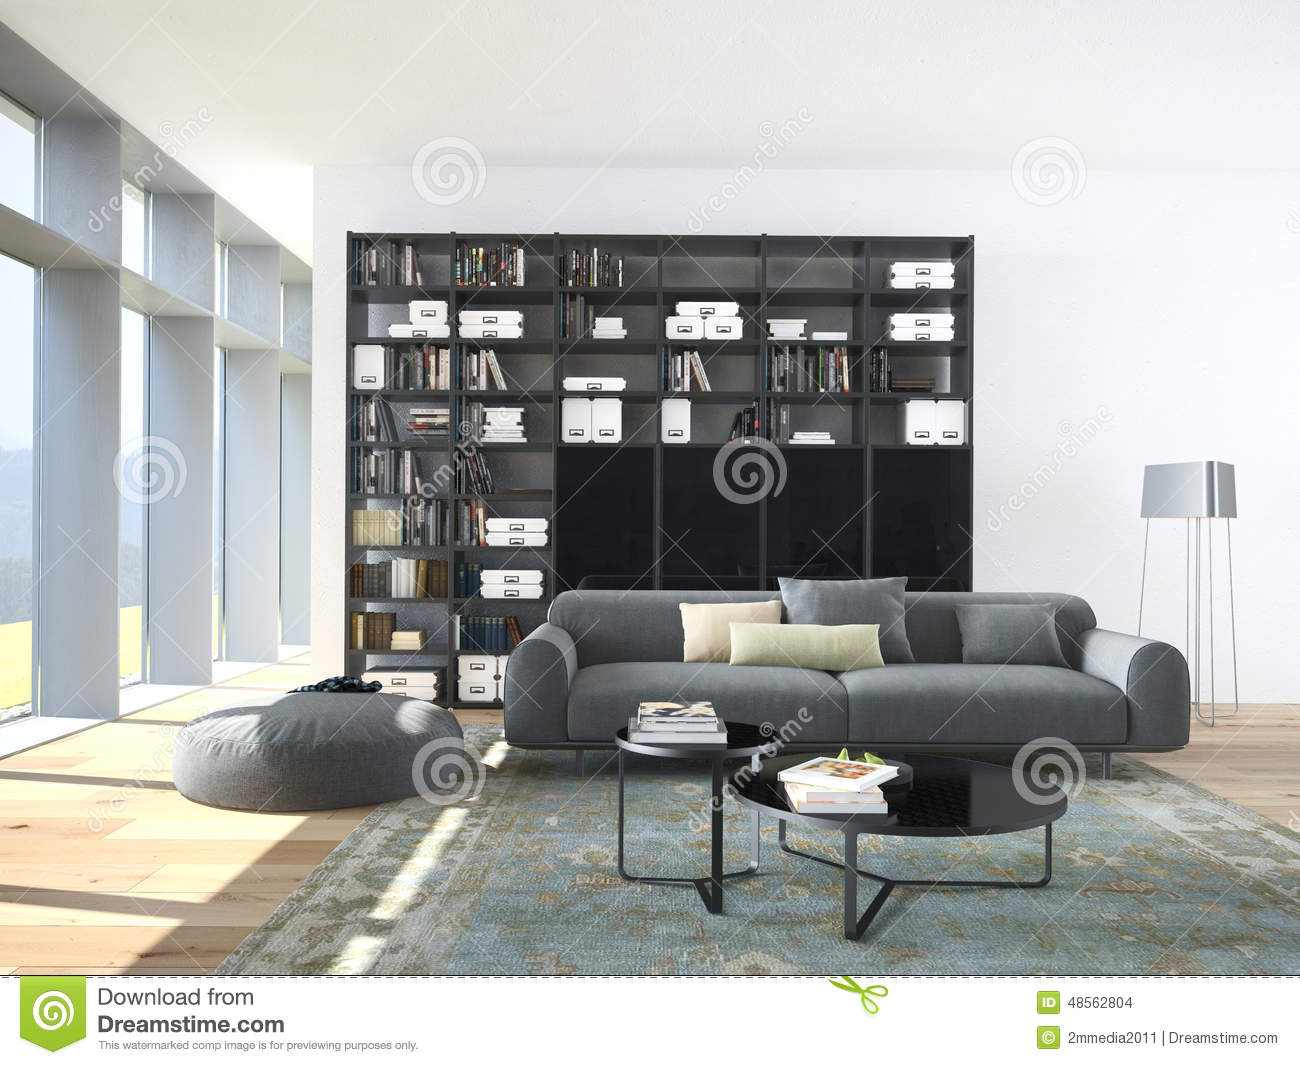 biblioth que contemporaine en bois design. Black Bedroom Furniture Sets. Home Design Ideas